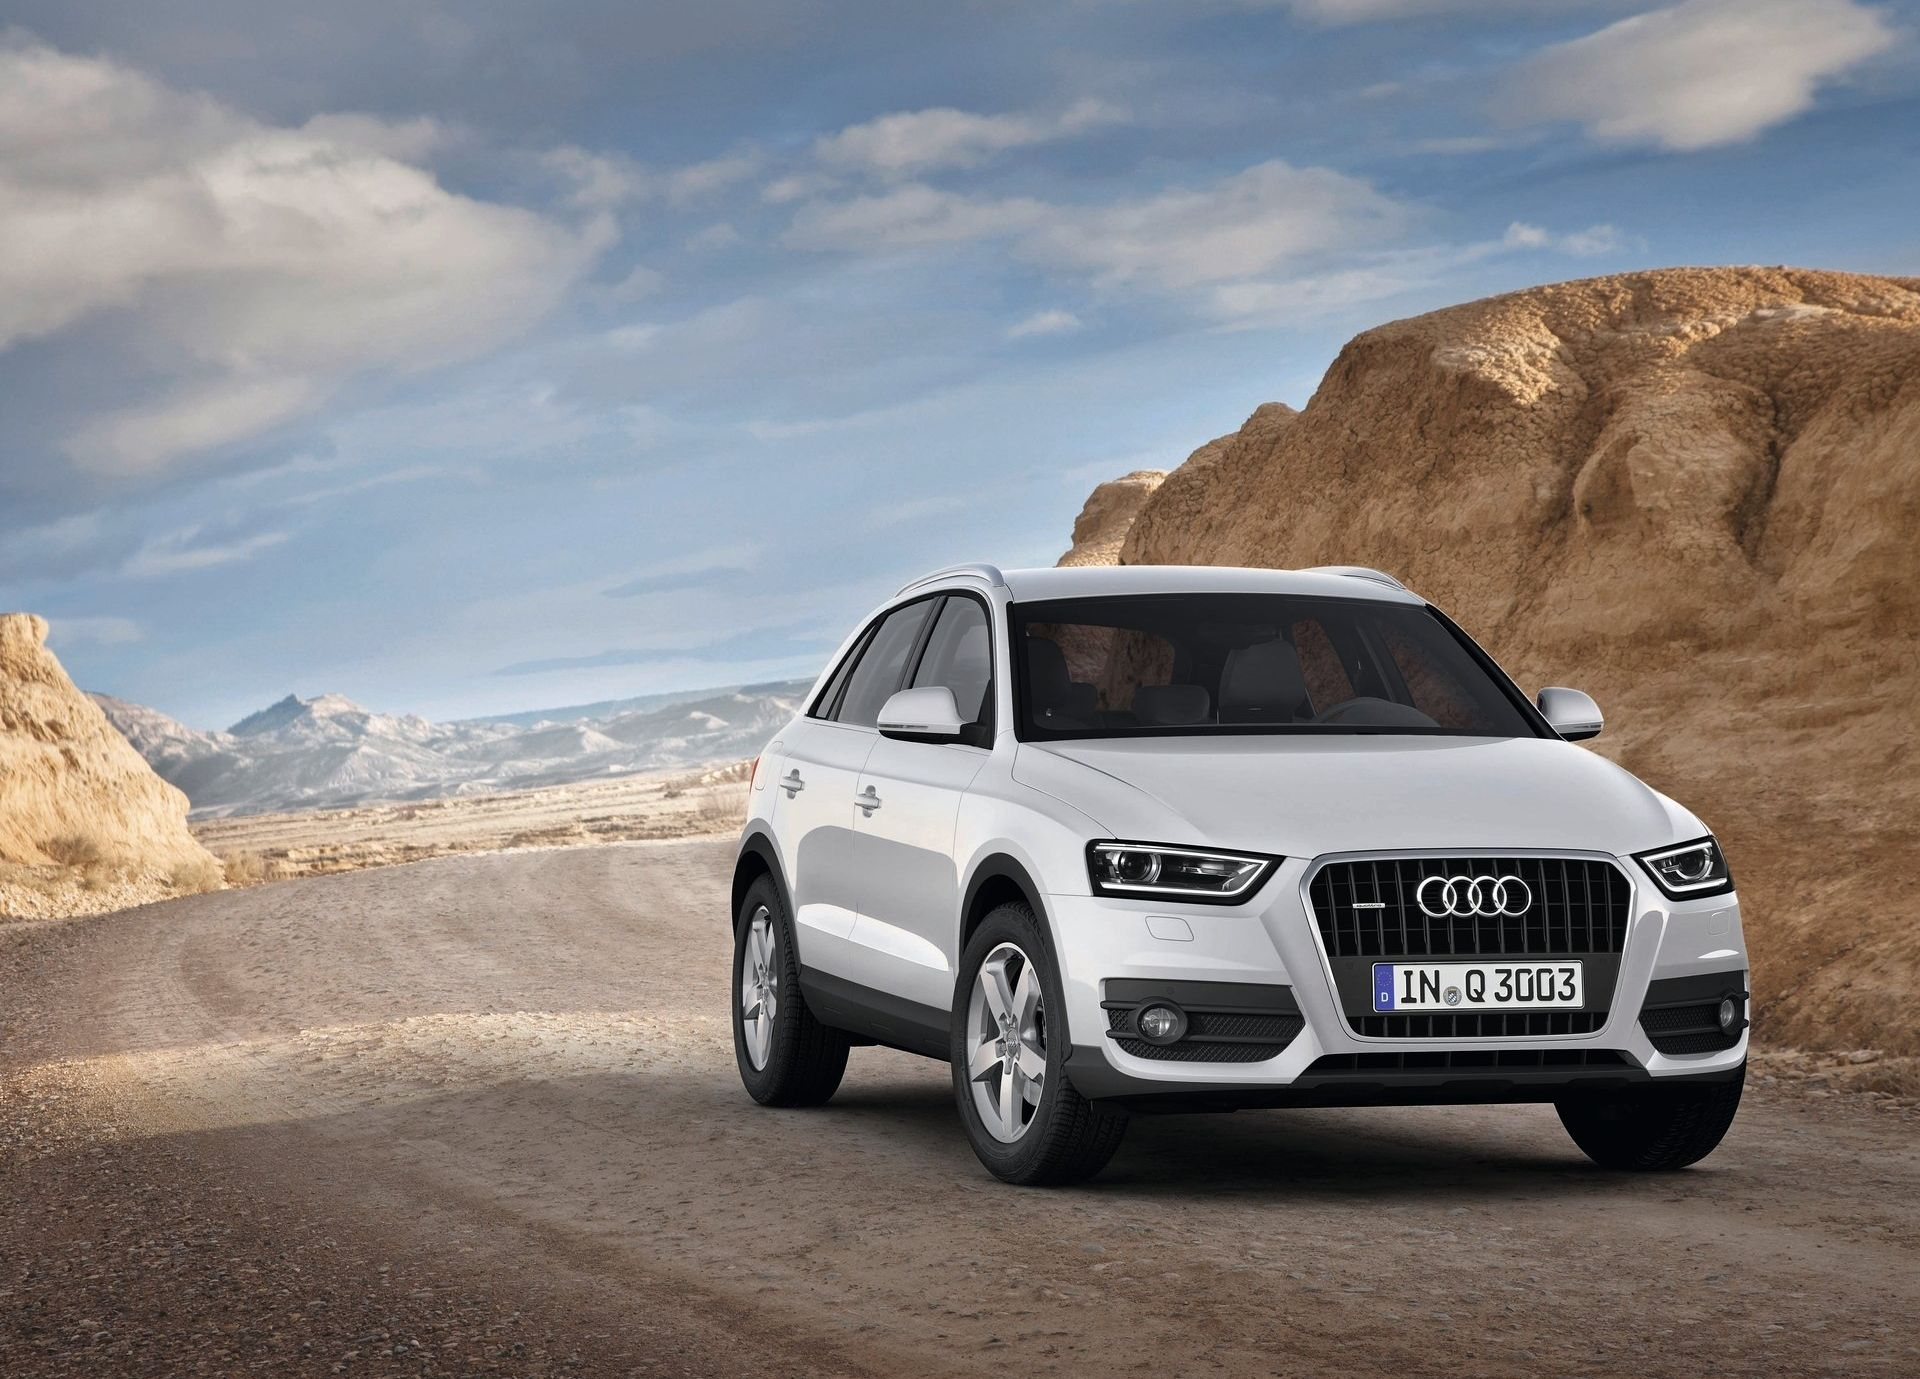 Audi overtakes BMW in June sales figure to become the largest selling luxury car maker in India